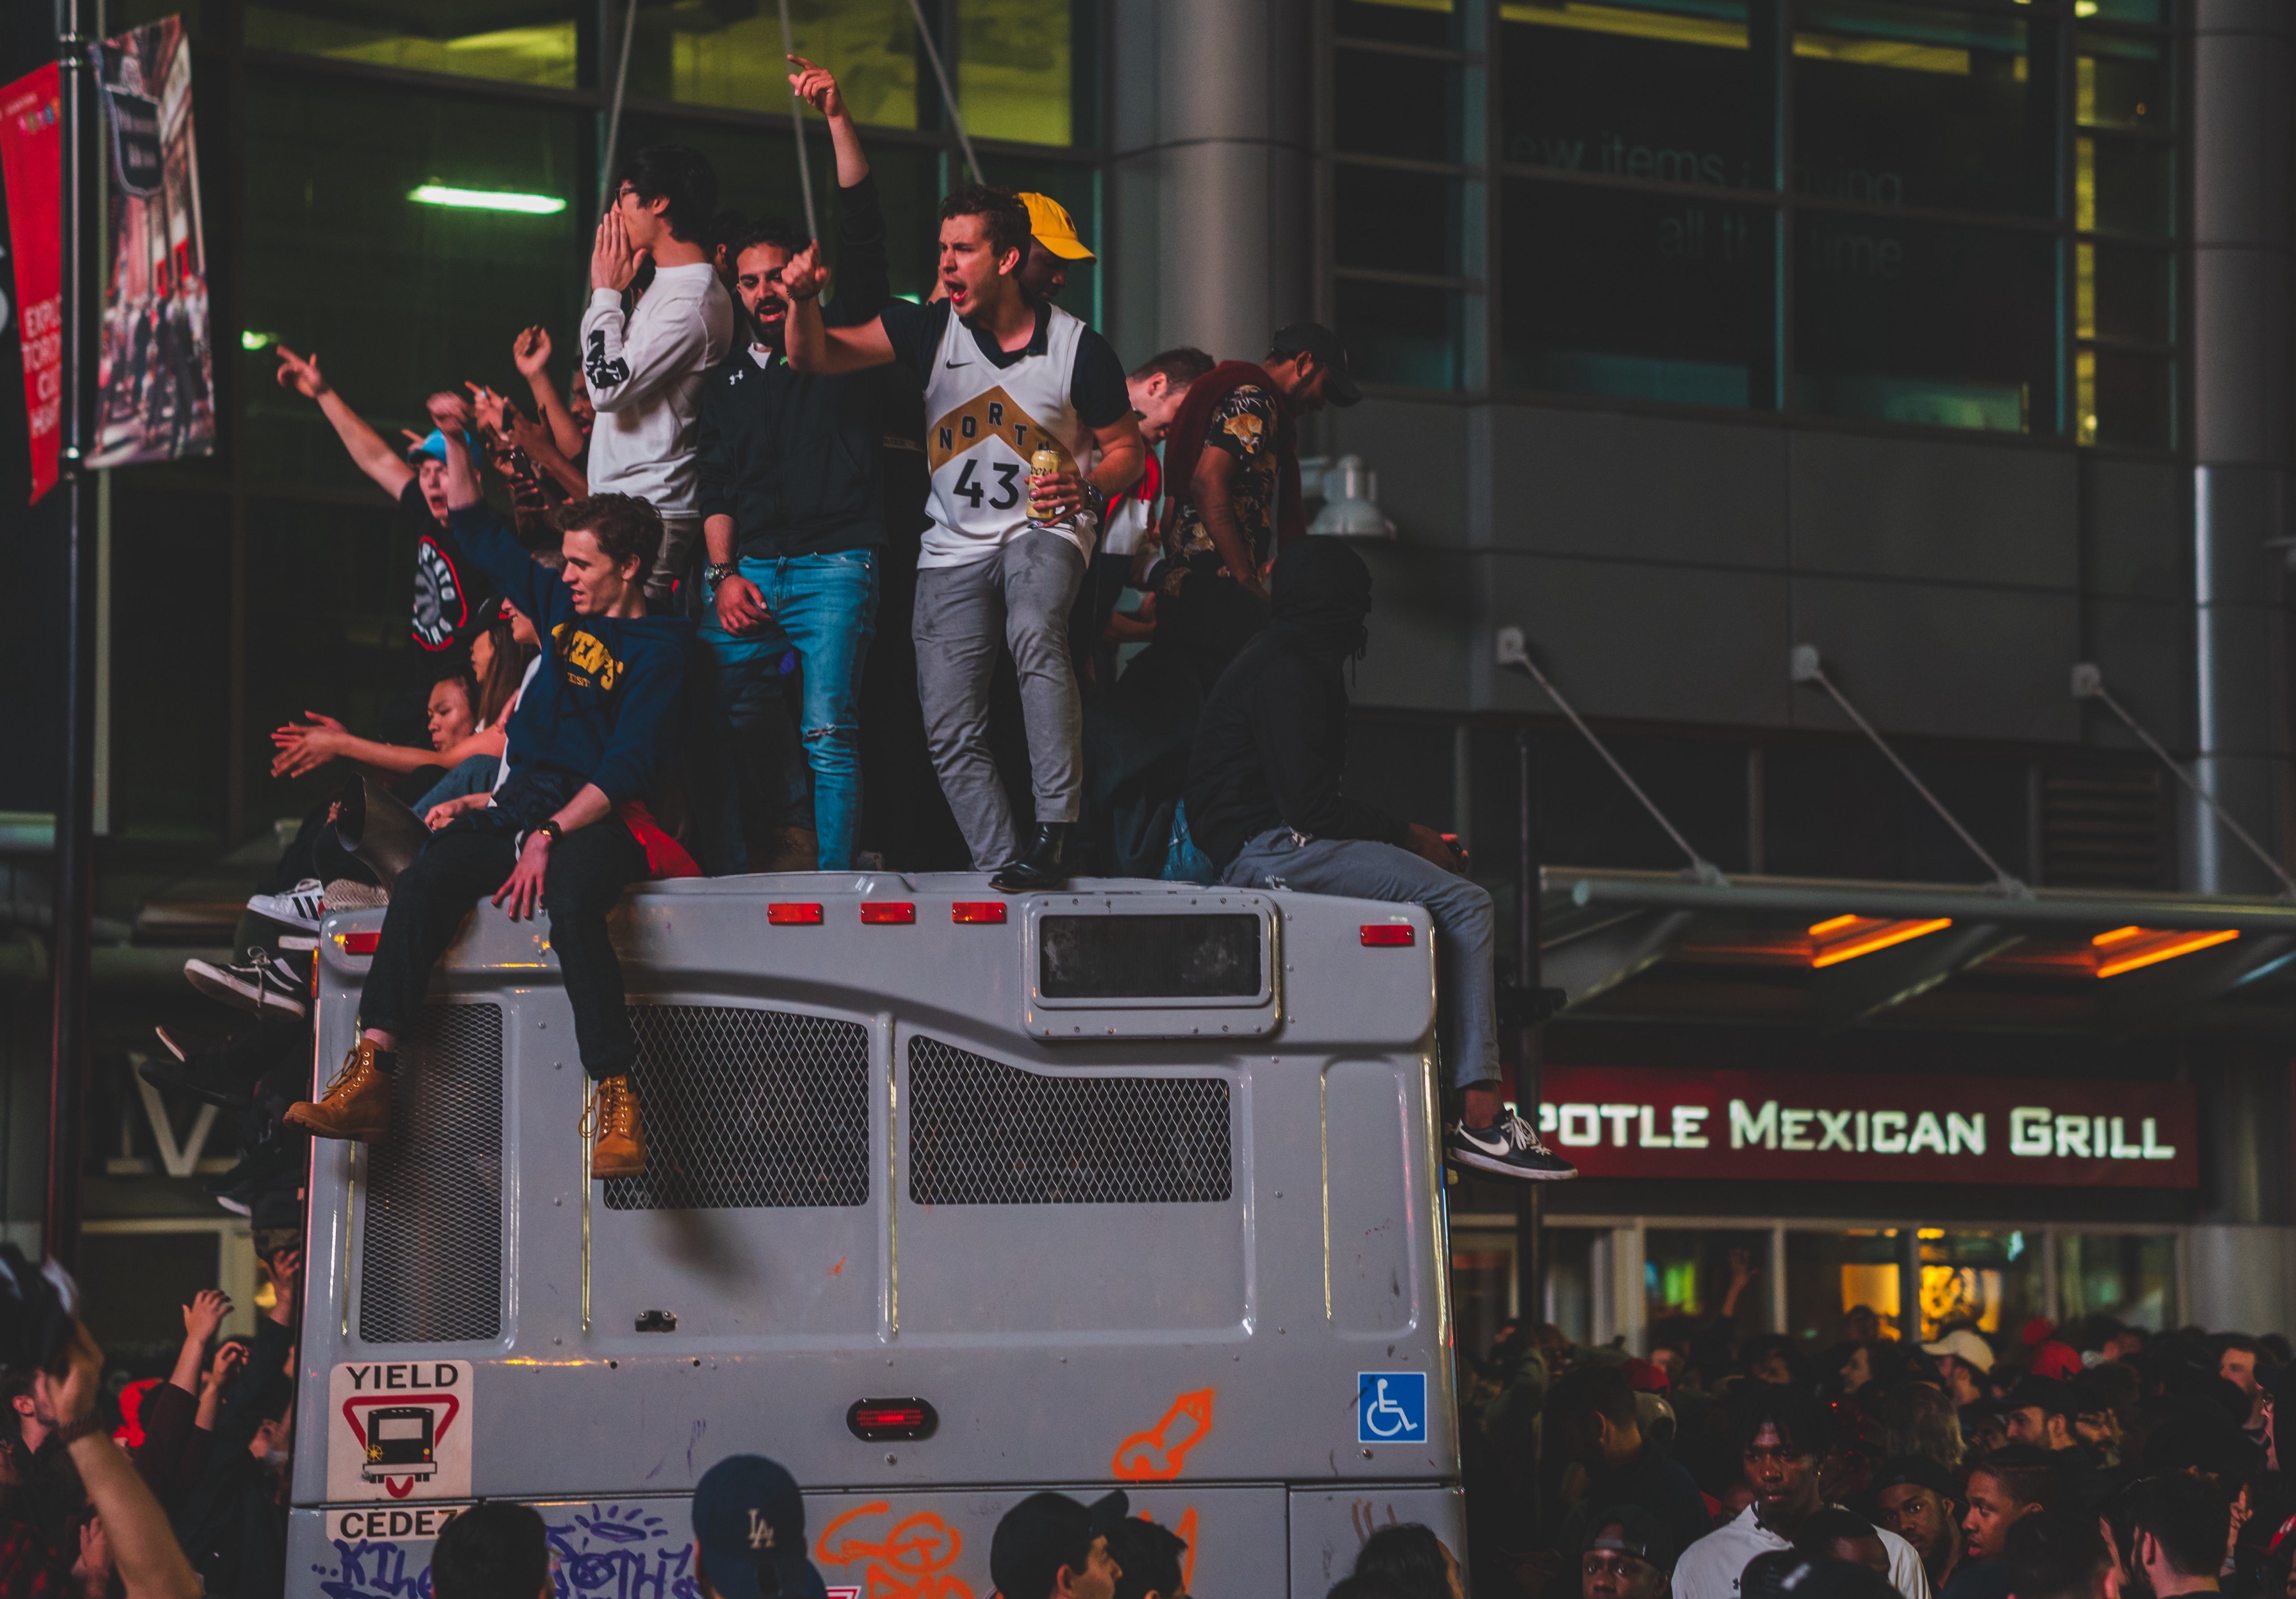 A mob on a street, sitting on top of a bus, gesturing etc.